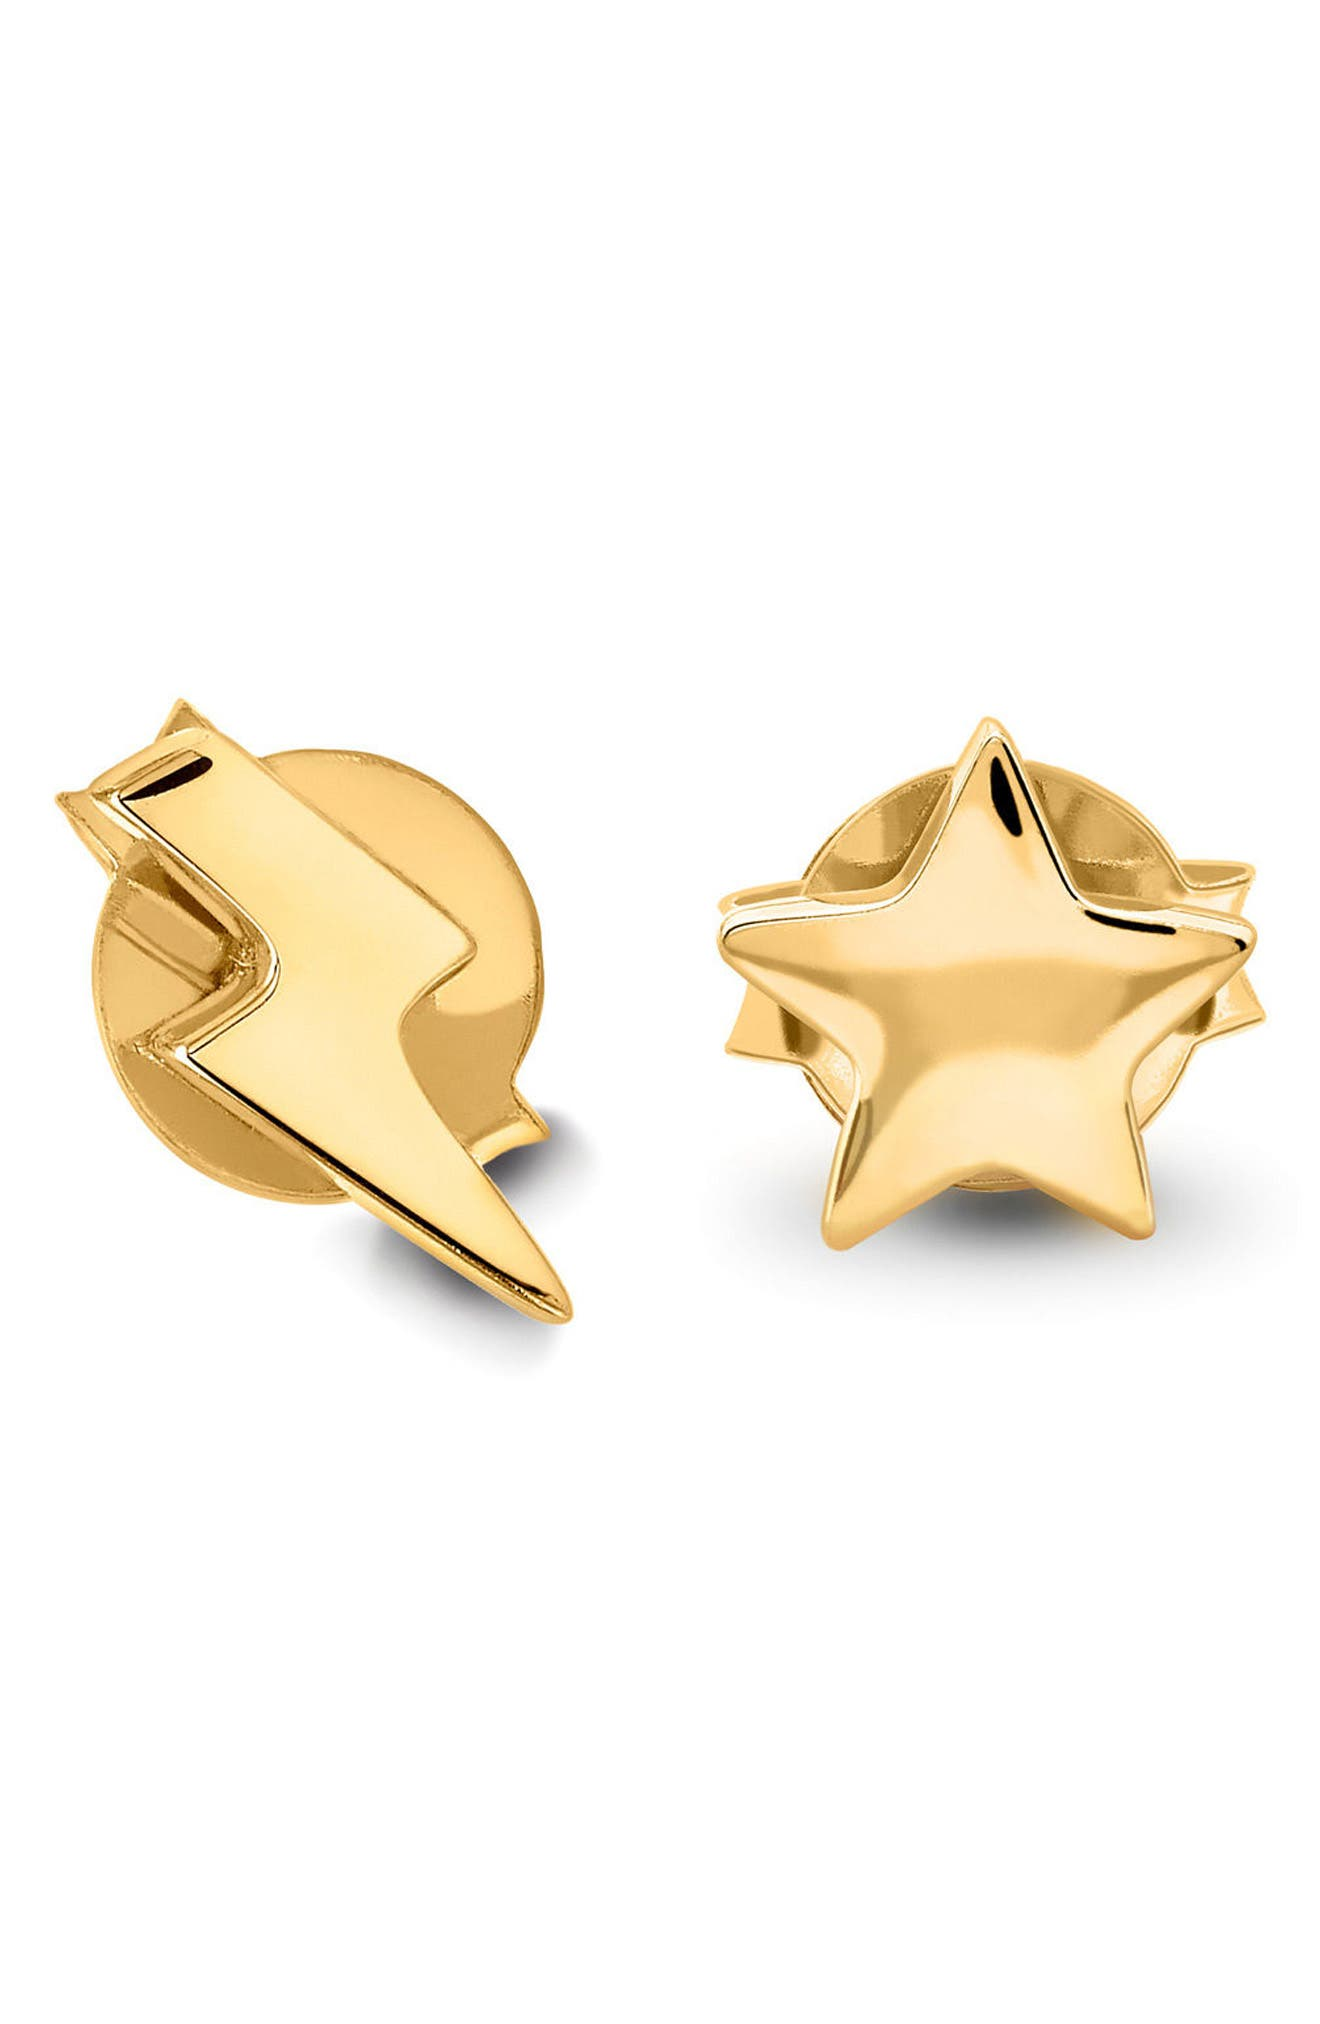 Star & Lightning Stud Earrings,                             Main thumbnail 1, color,